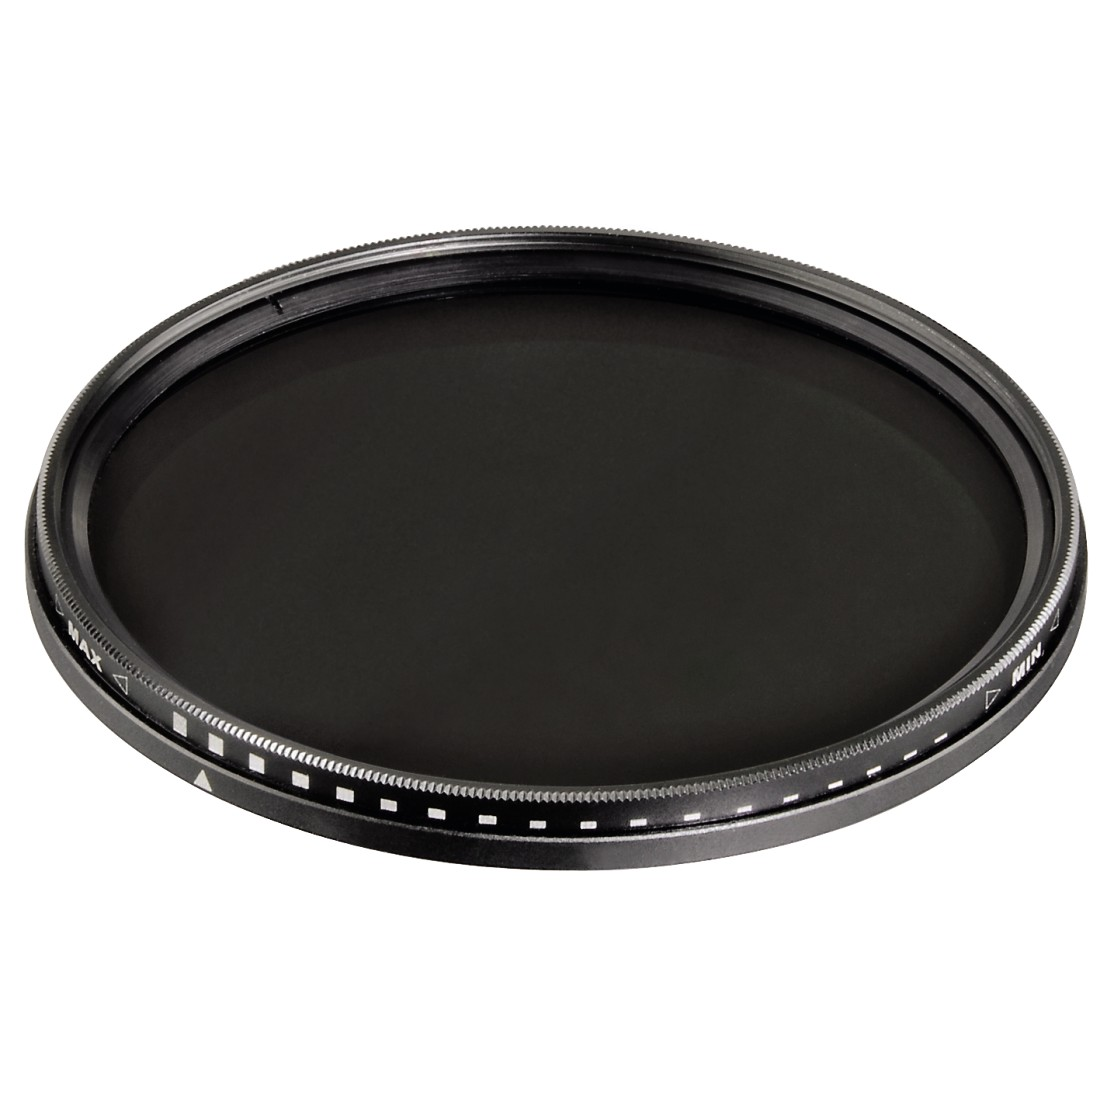 abx High-Res Image - Hama, Vario ND2-400 Neutral-Density Filter, coated, 58.0 mm